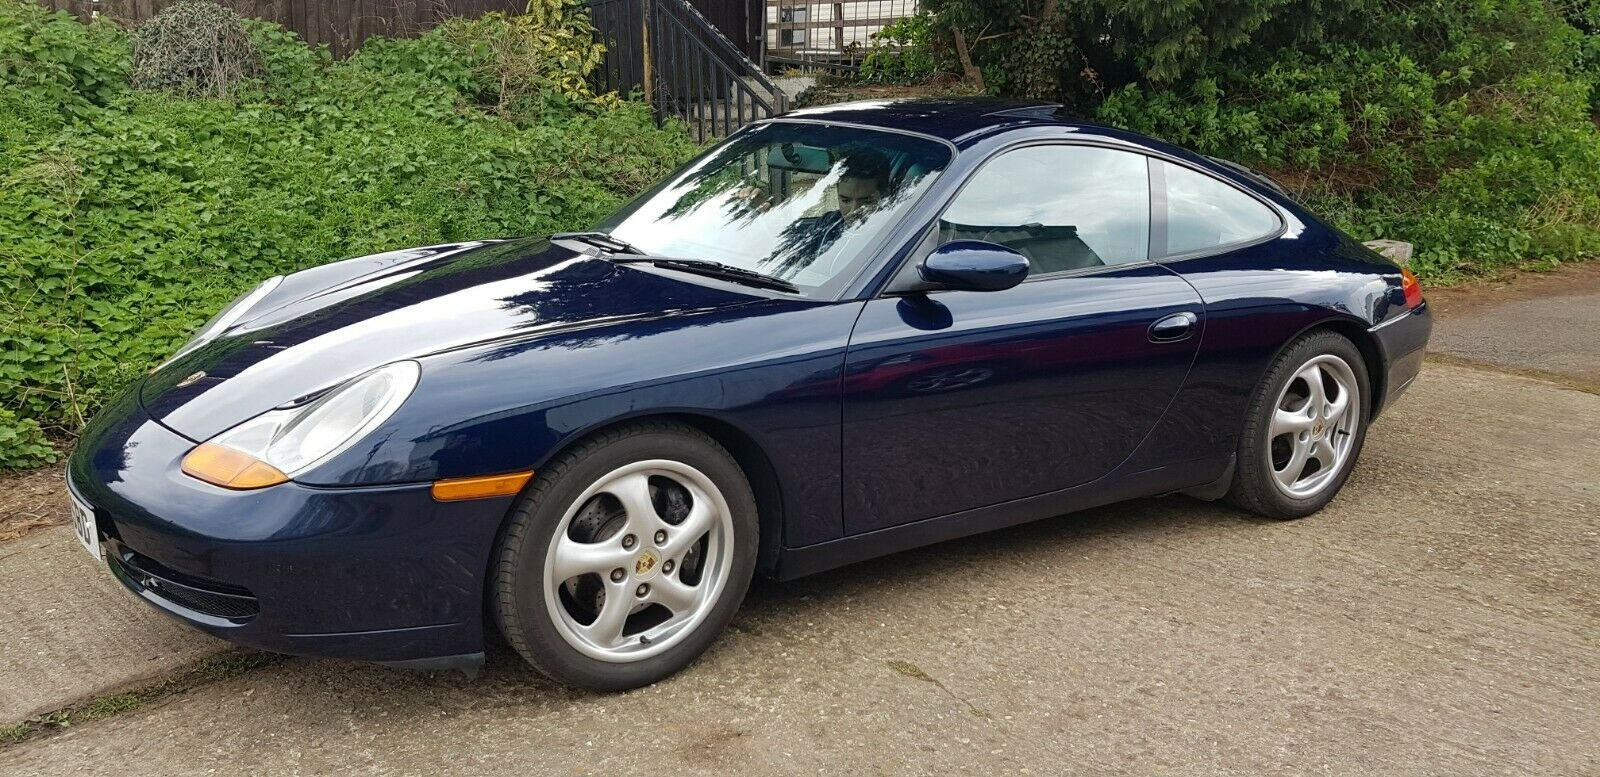 1998 911 Porsche Carrera, Full History, Low Miles For Sale (picture 1 of 6)